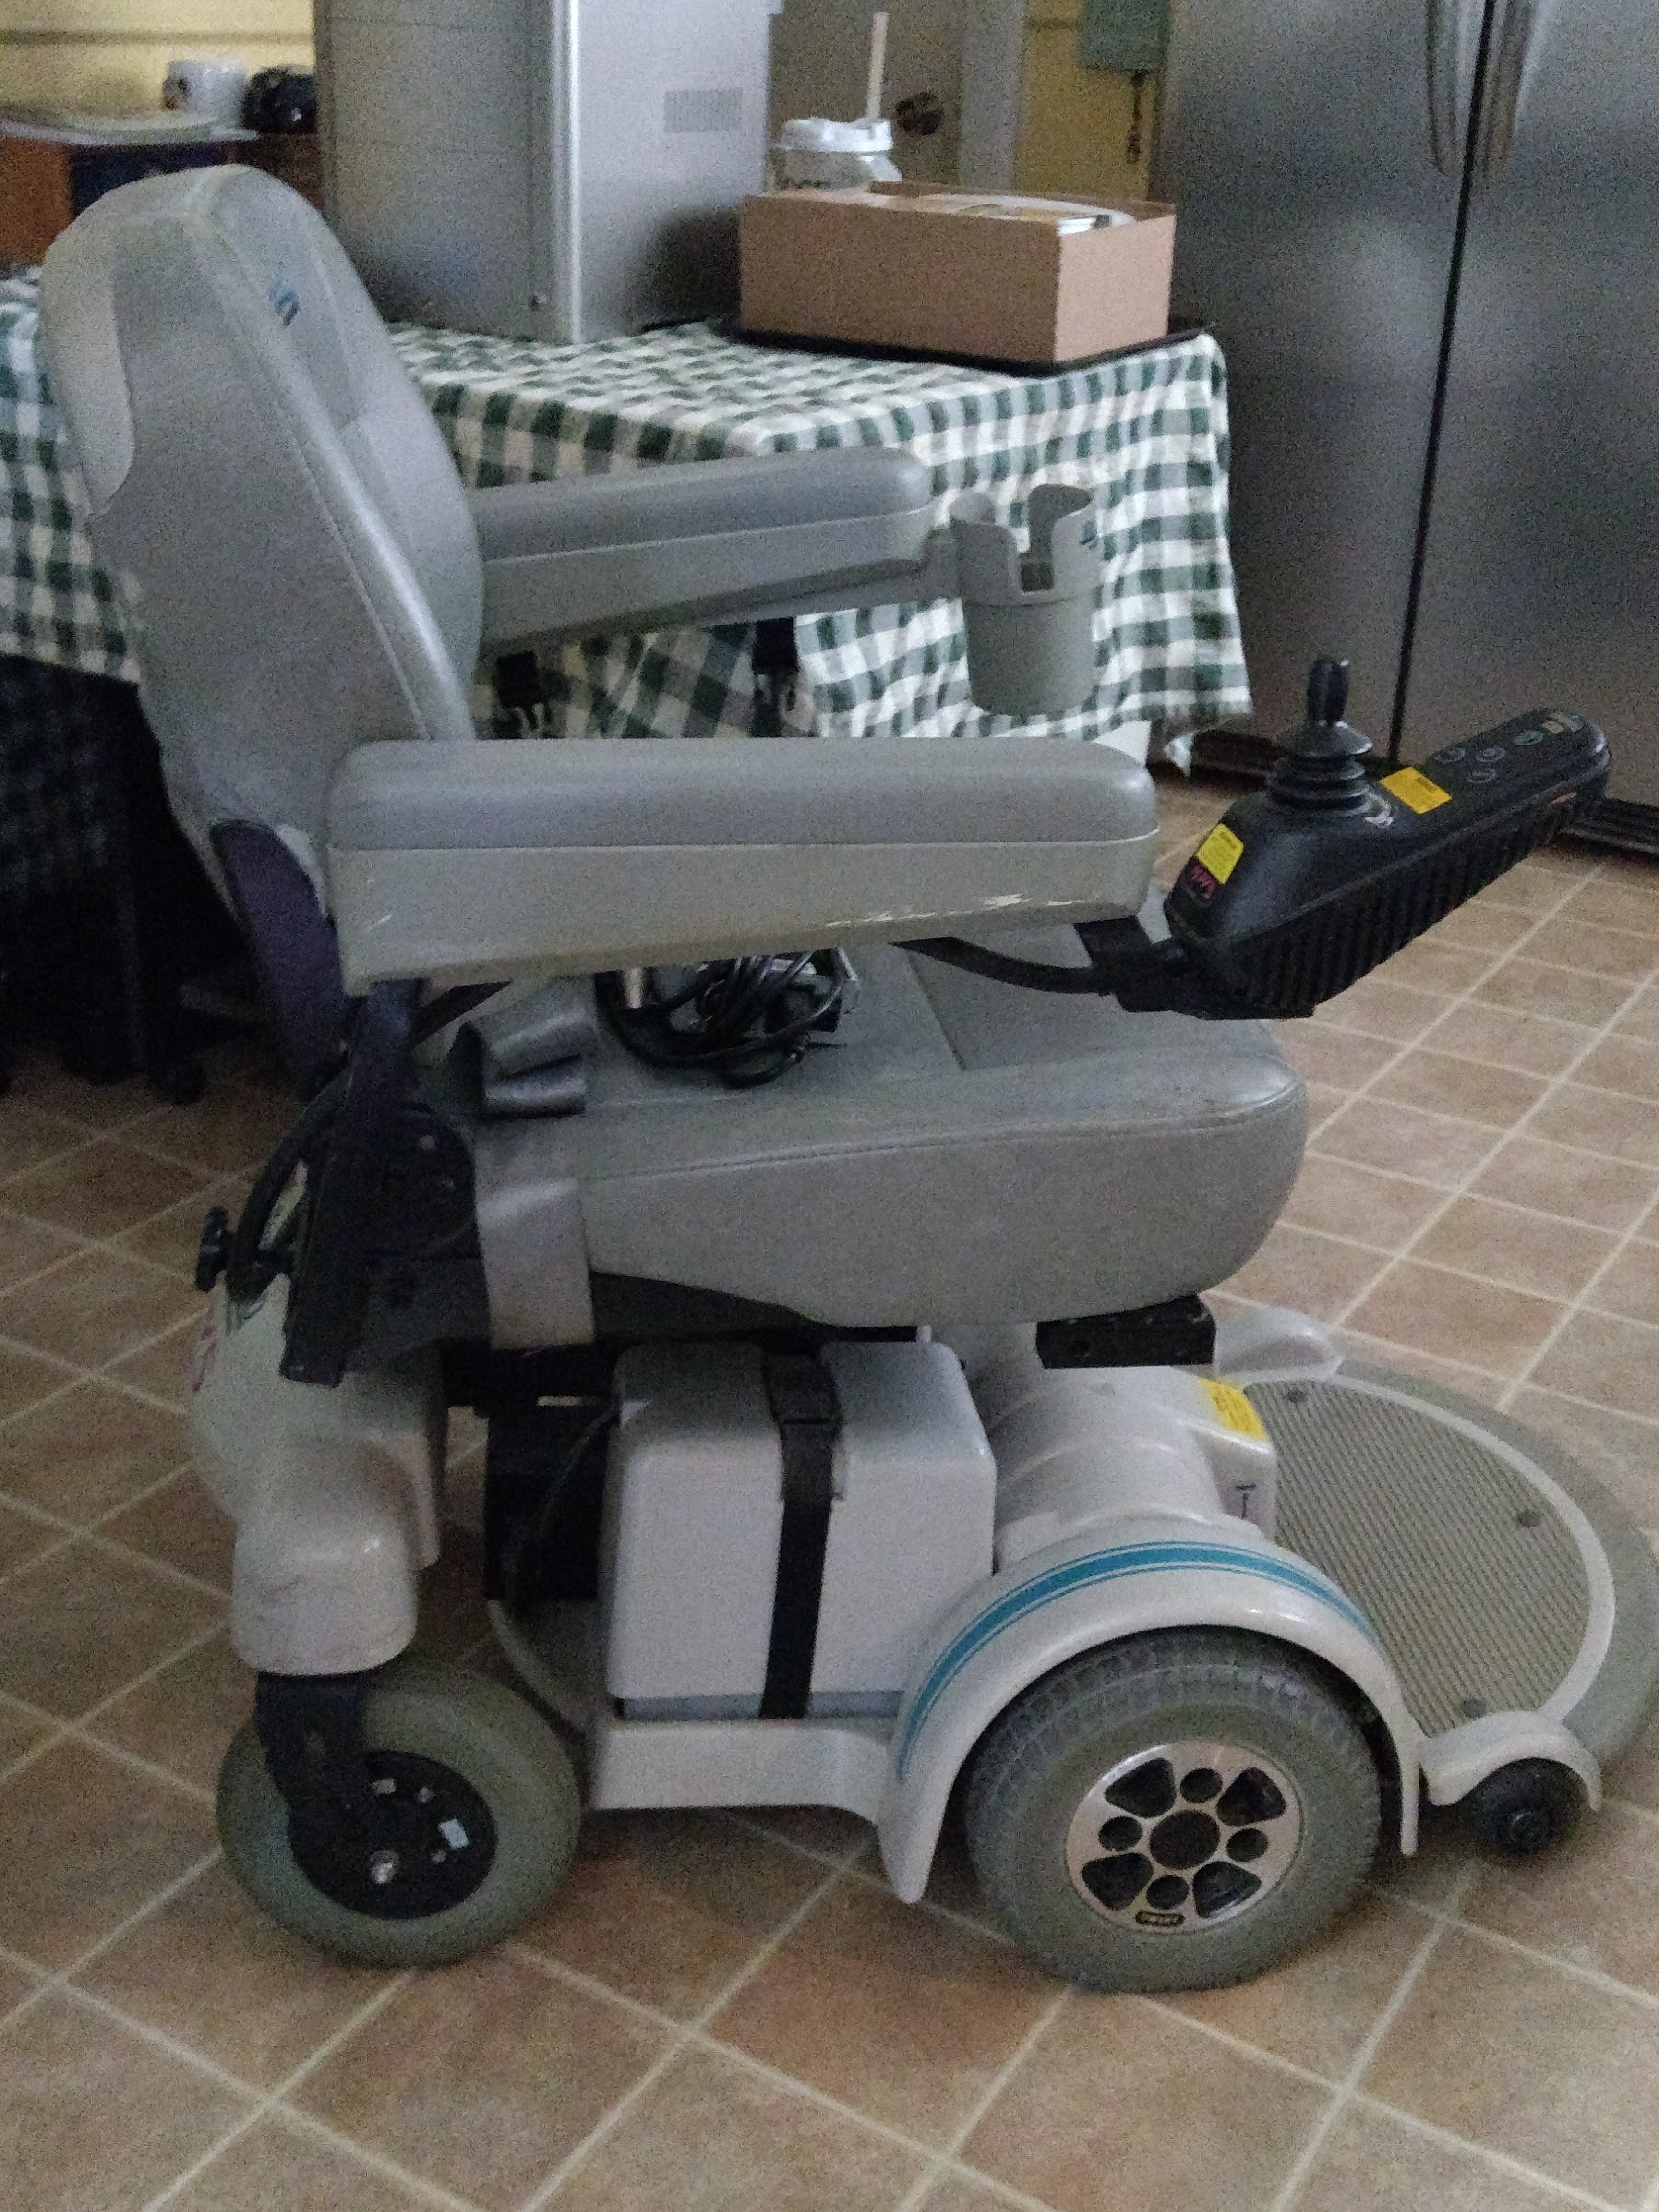 A Nearly Brand New Hoveround Buy Sell Used Electric Wheelchairs